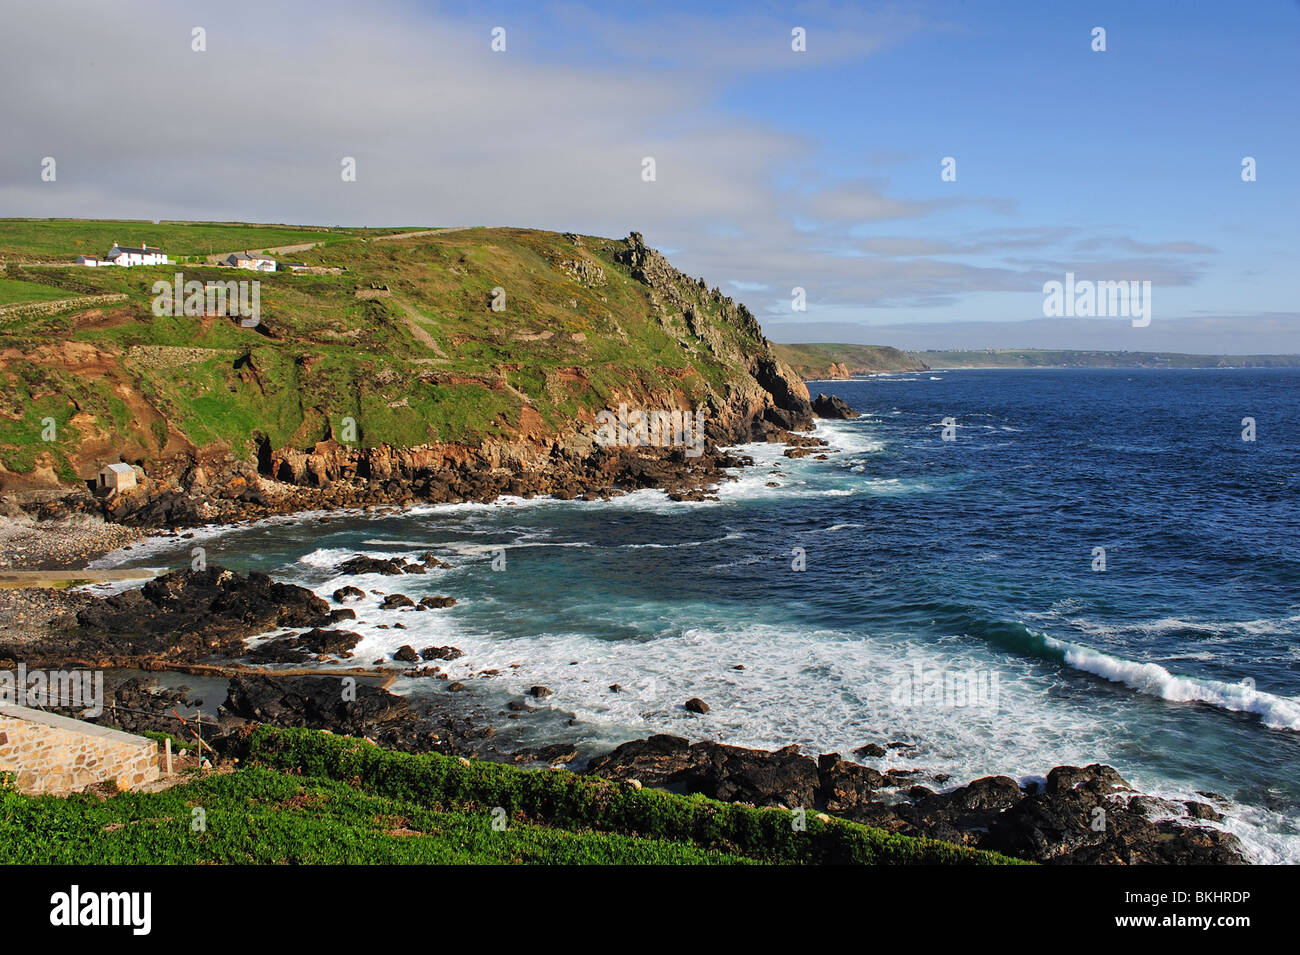 Priest Cove, Cape, Cornwall, UK - Stock Image